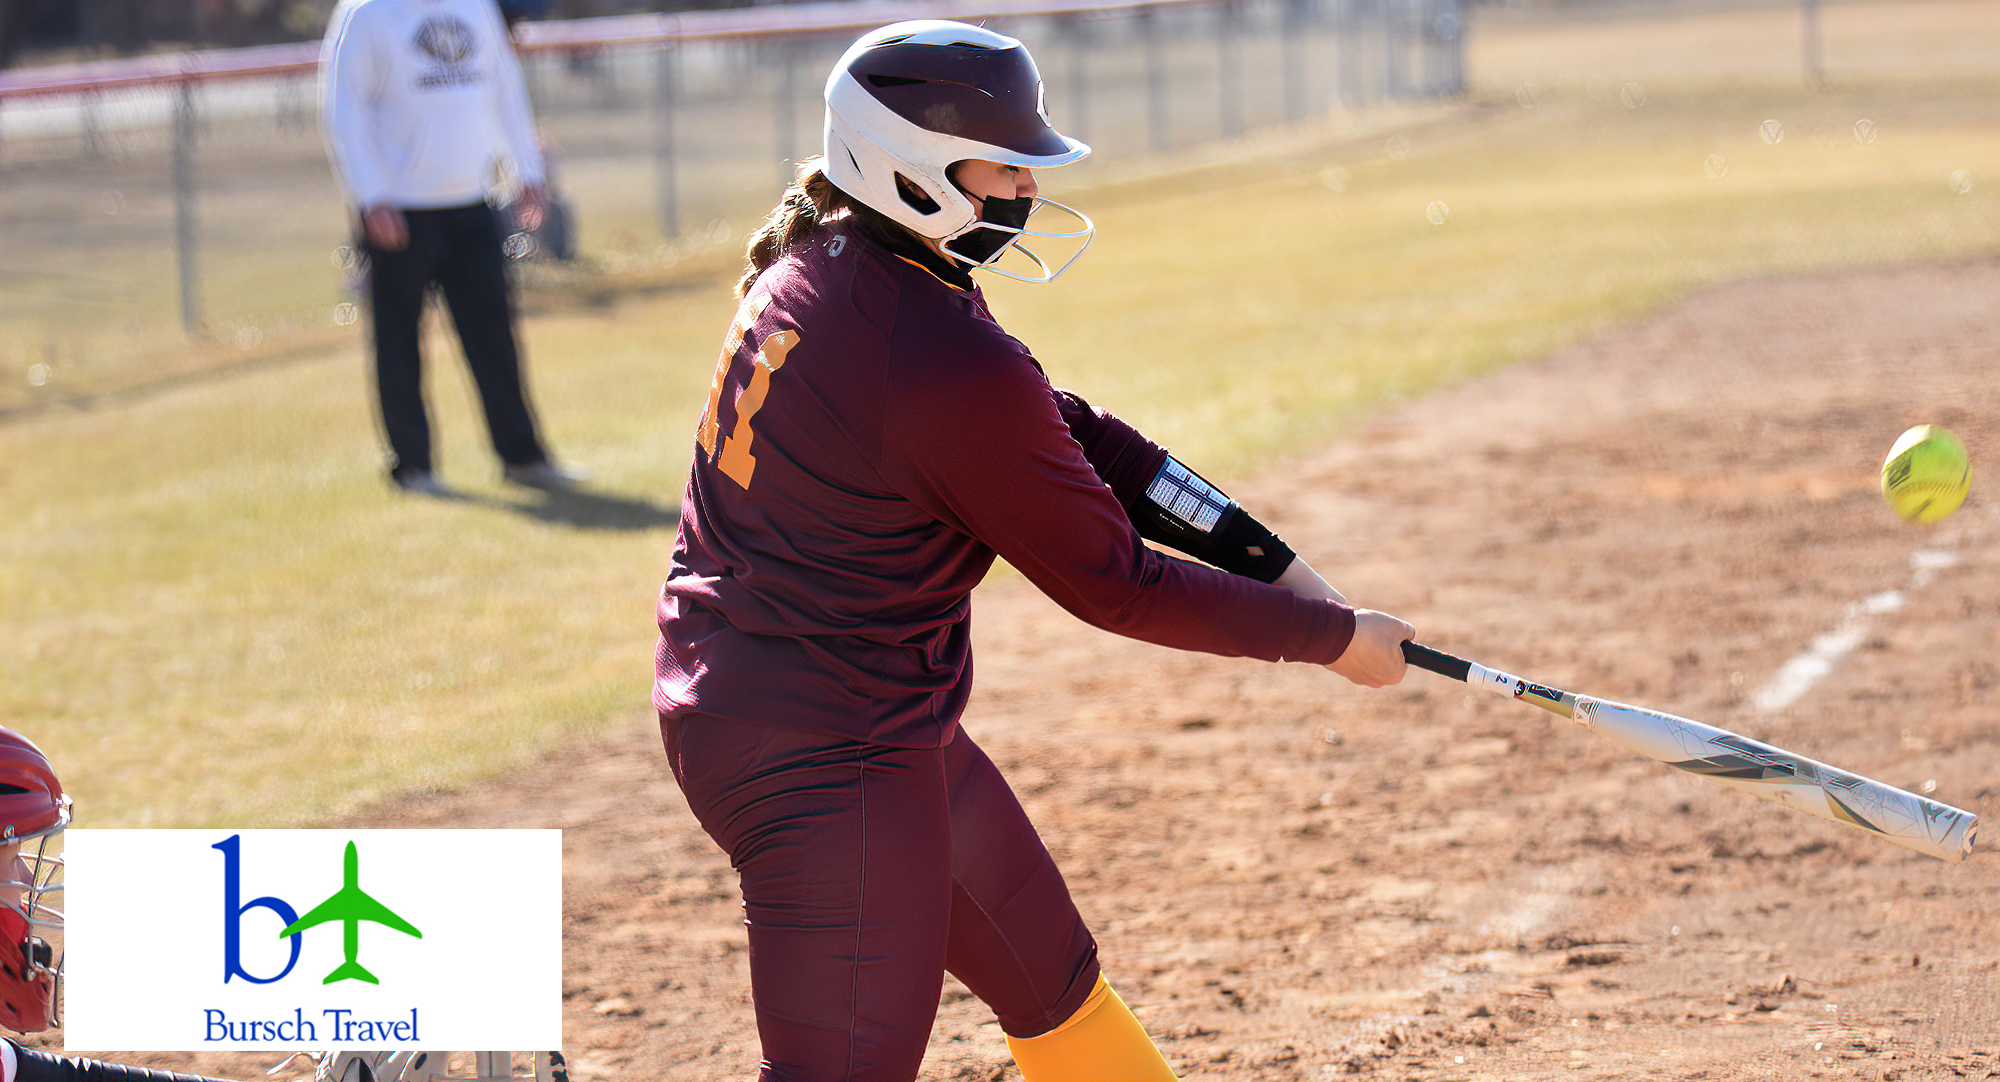 Junior Val Kolstad connects on a pitch and sends it to the left field fence for a double in the Cobbers' 19-10 win over MSU Moorhead in Game 1 of the DH.